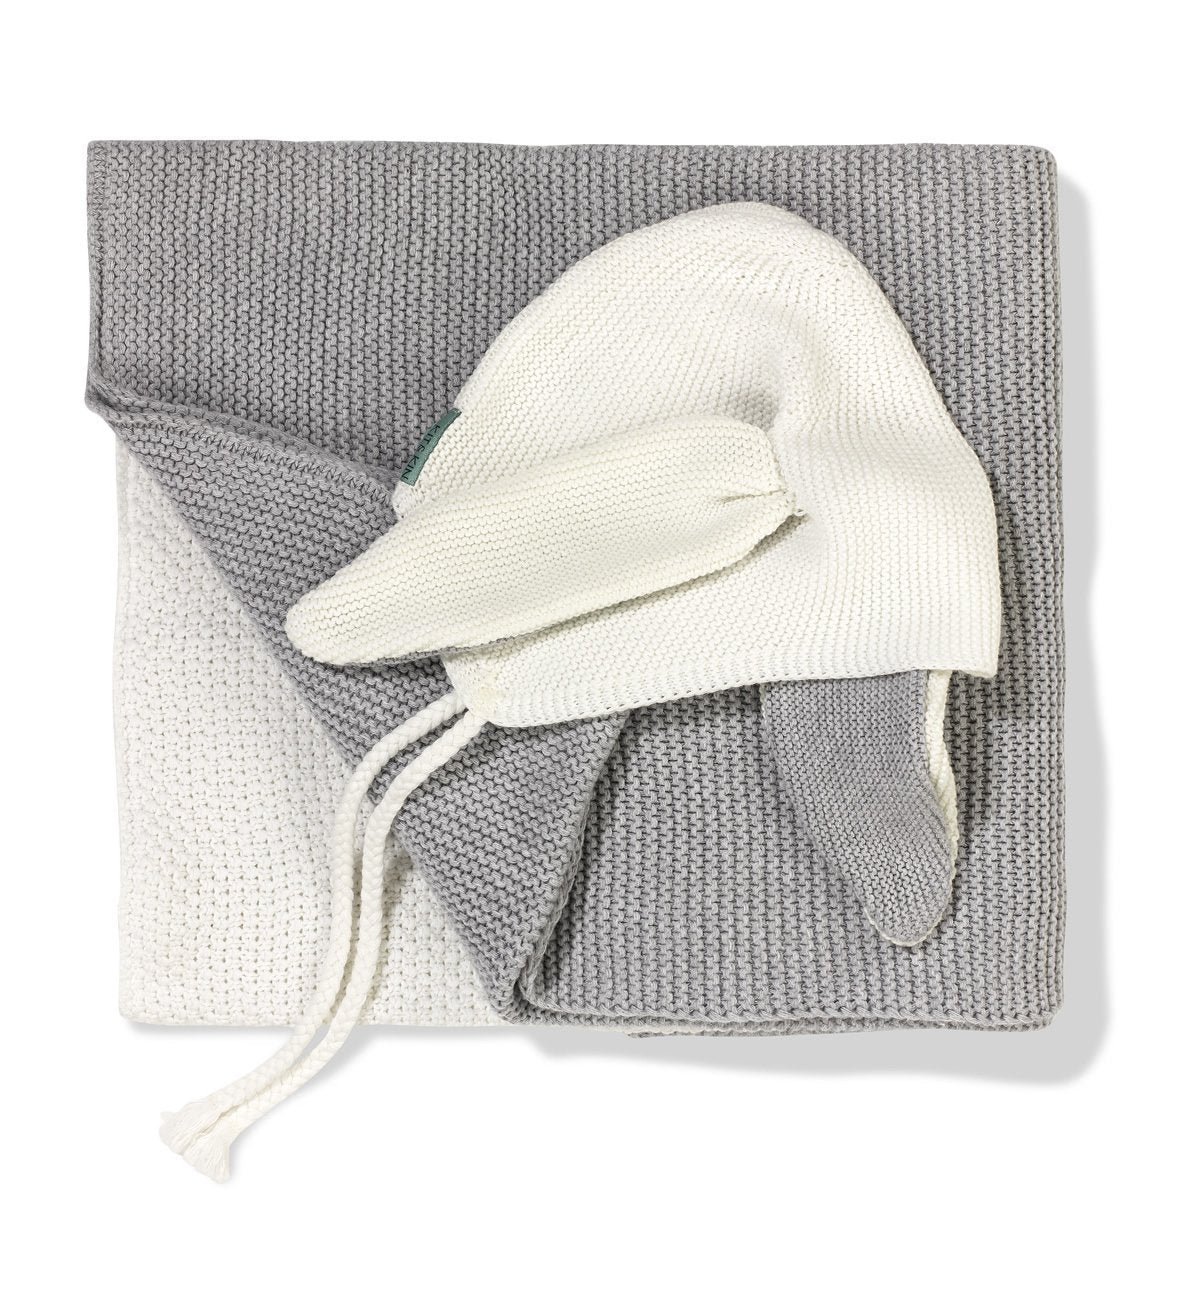 Kit & Kin white hat and blanket bundle gift box